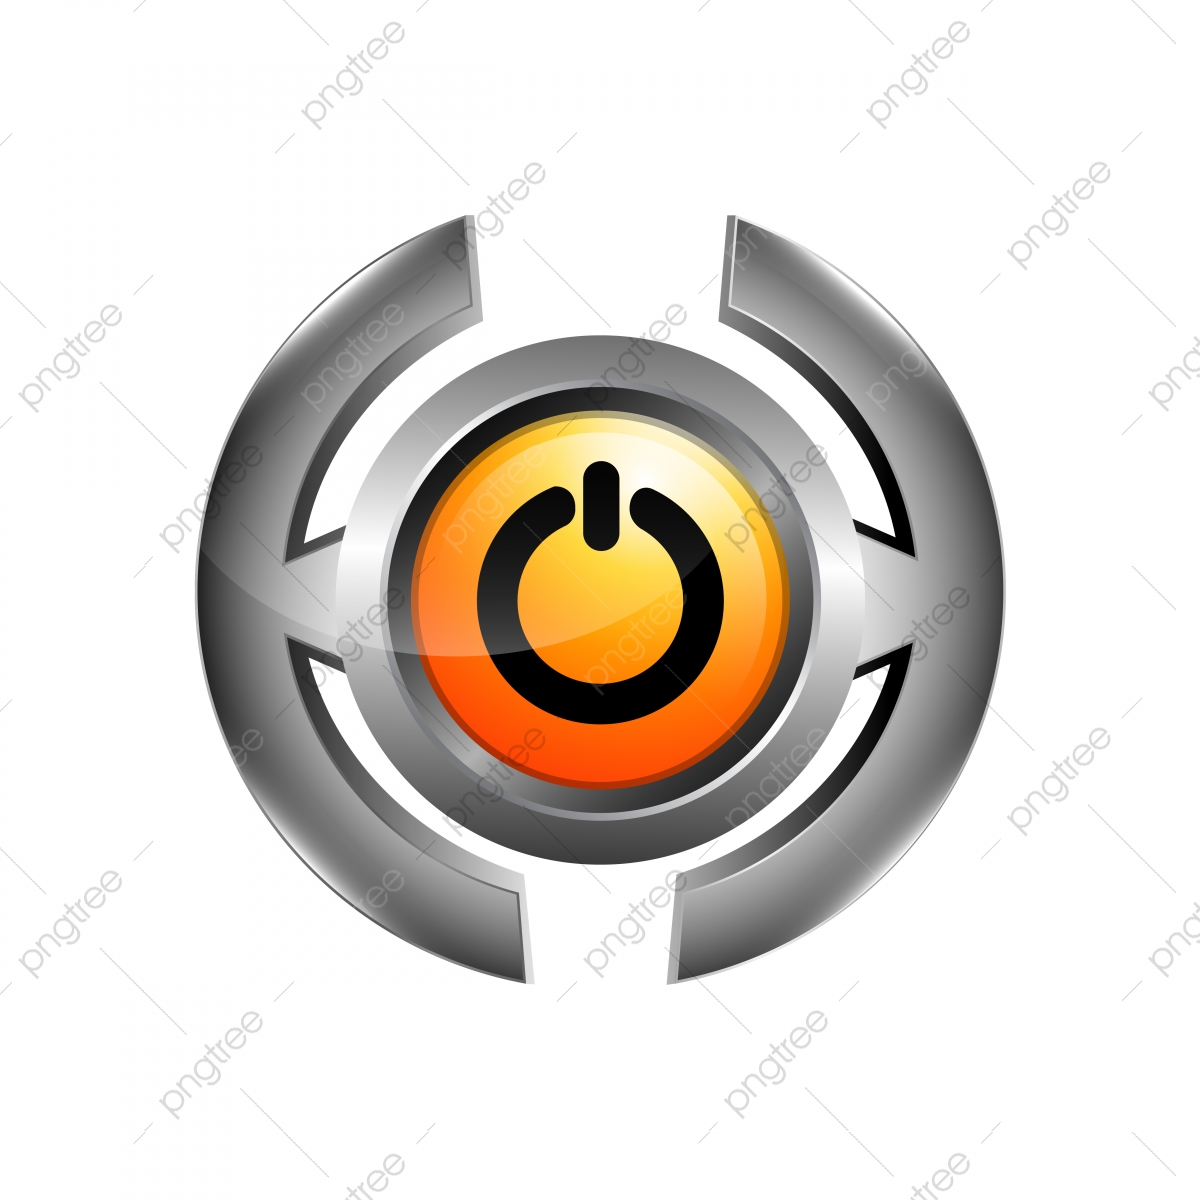 3d logo of chrome power button turn off icon vector isolated on template for free download on pngtree 3d logo of chrome power button turn off